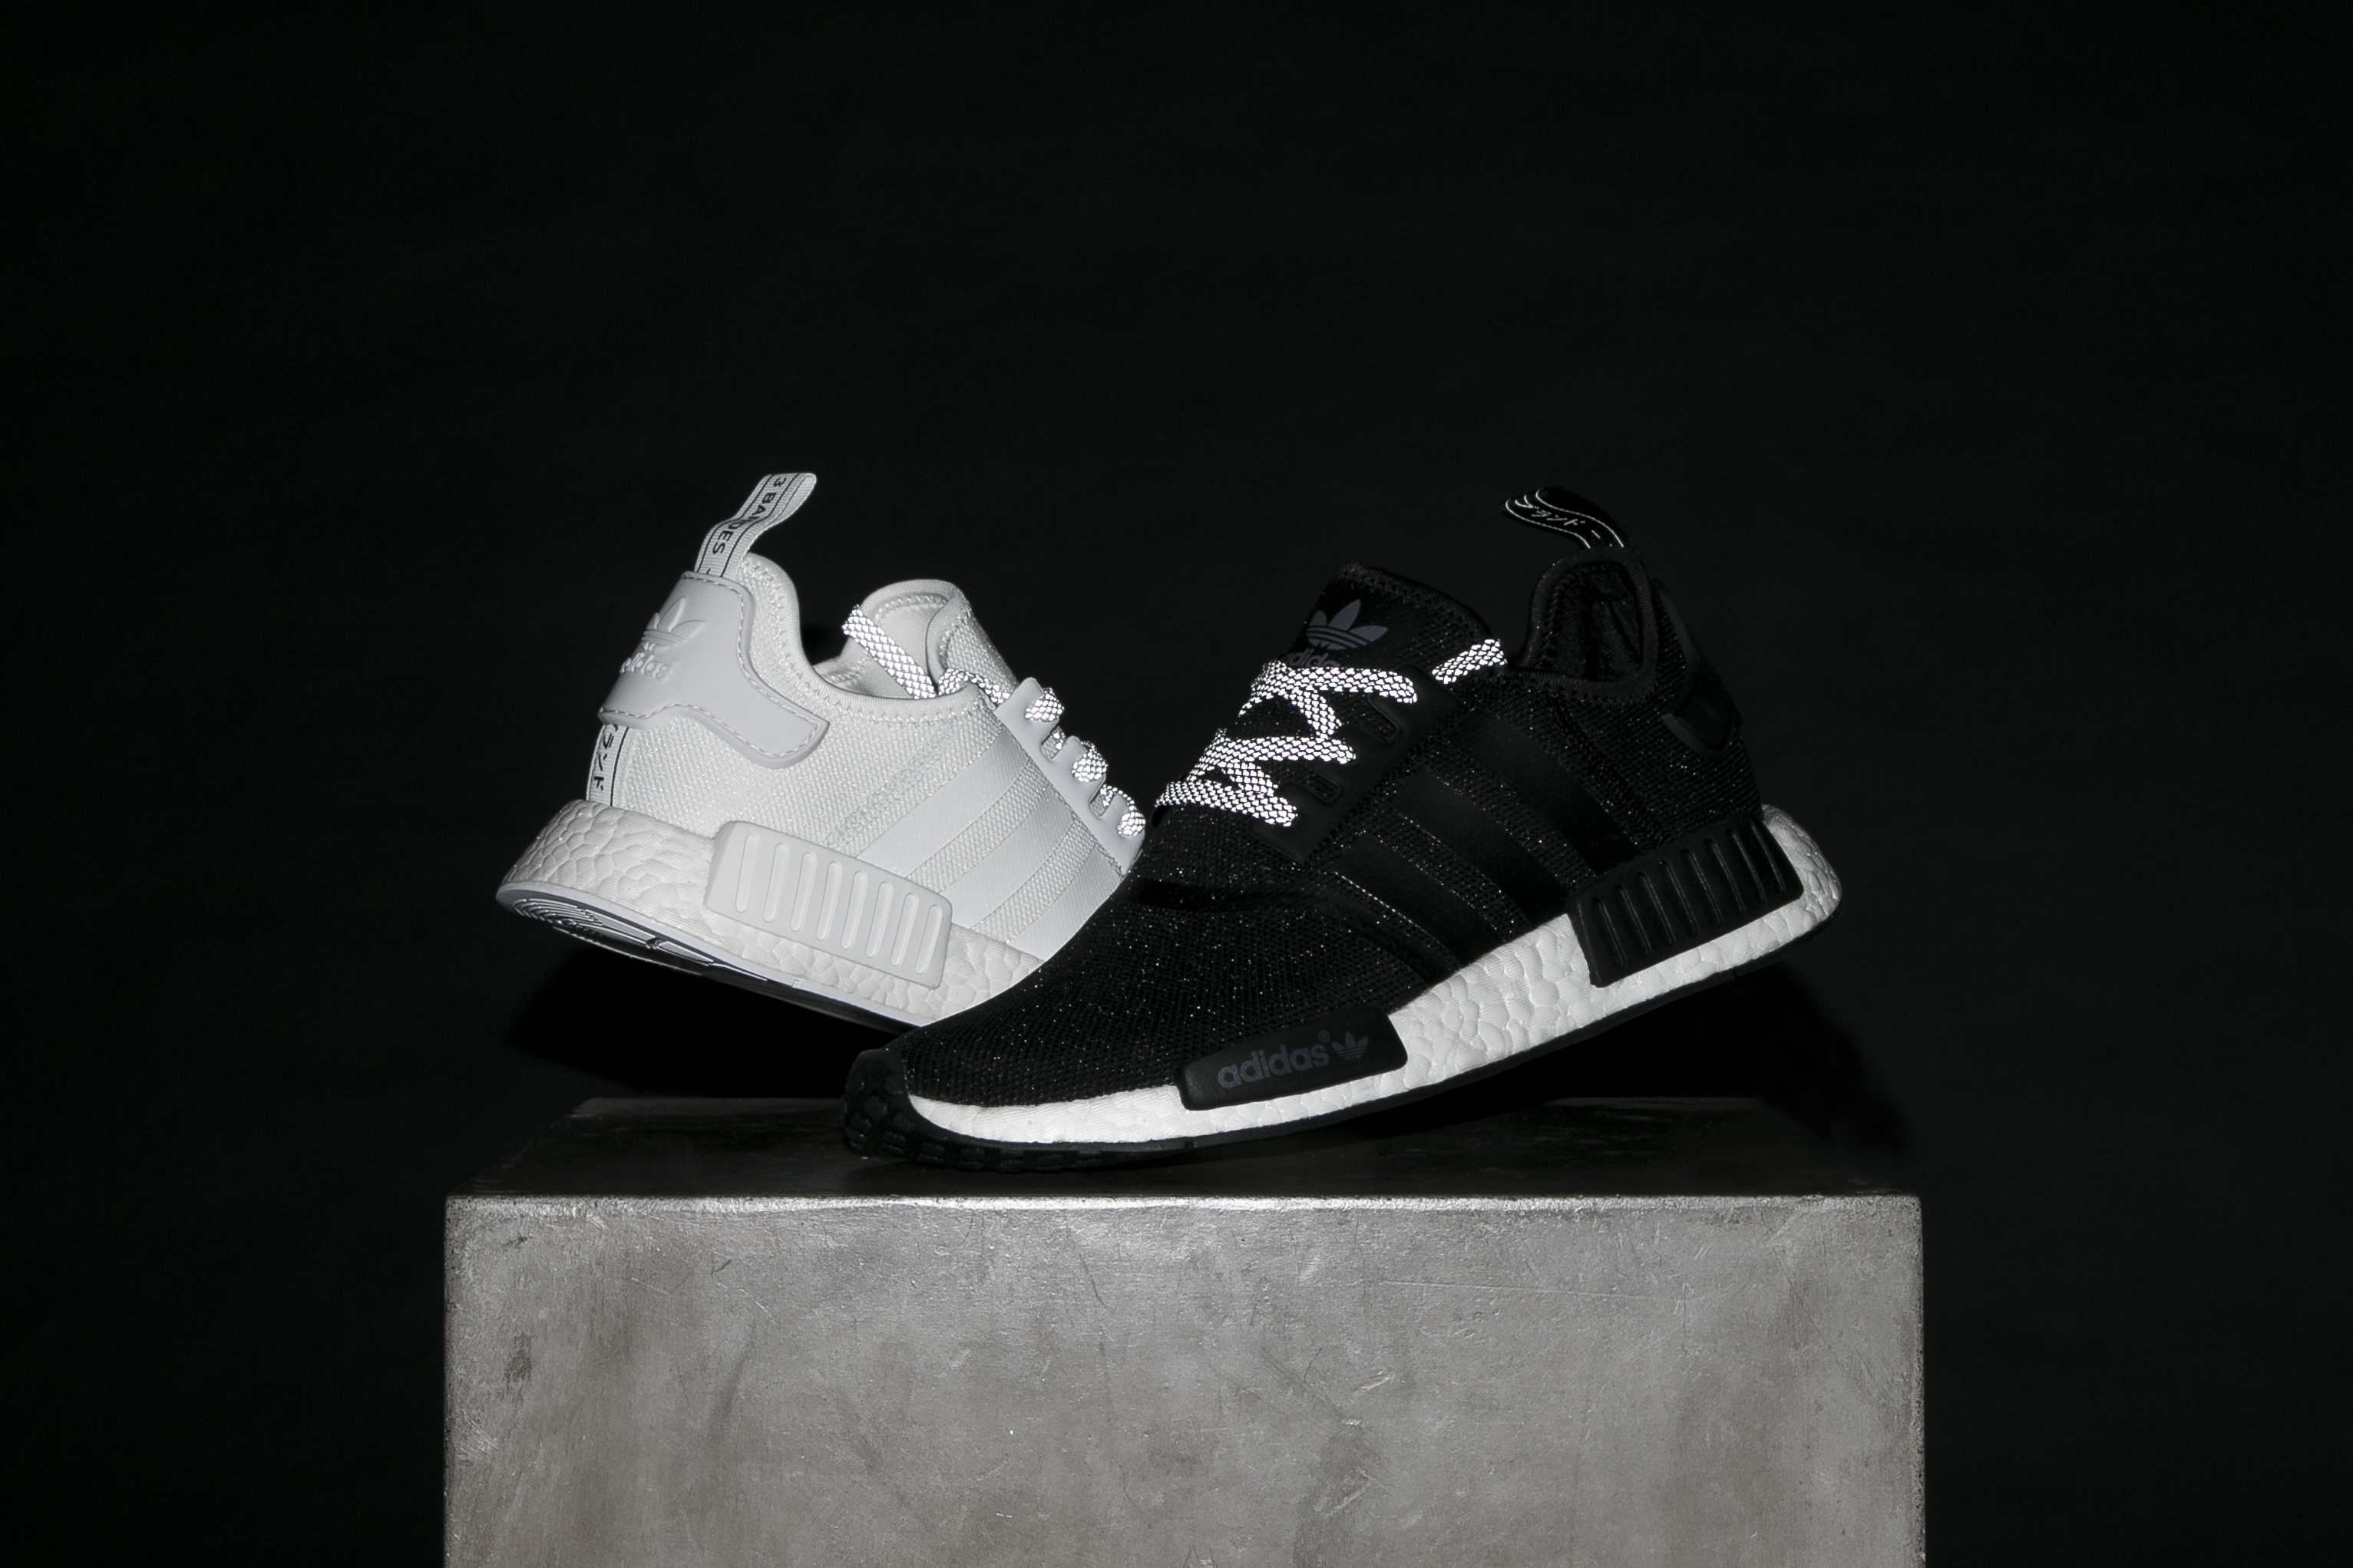 adidas originals beige nmd xr1 primeknit sneakers Winchester House